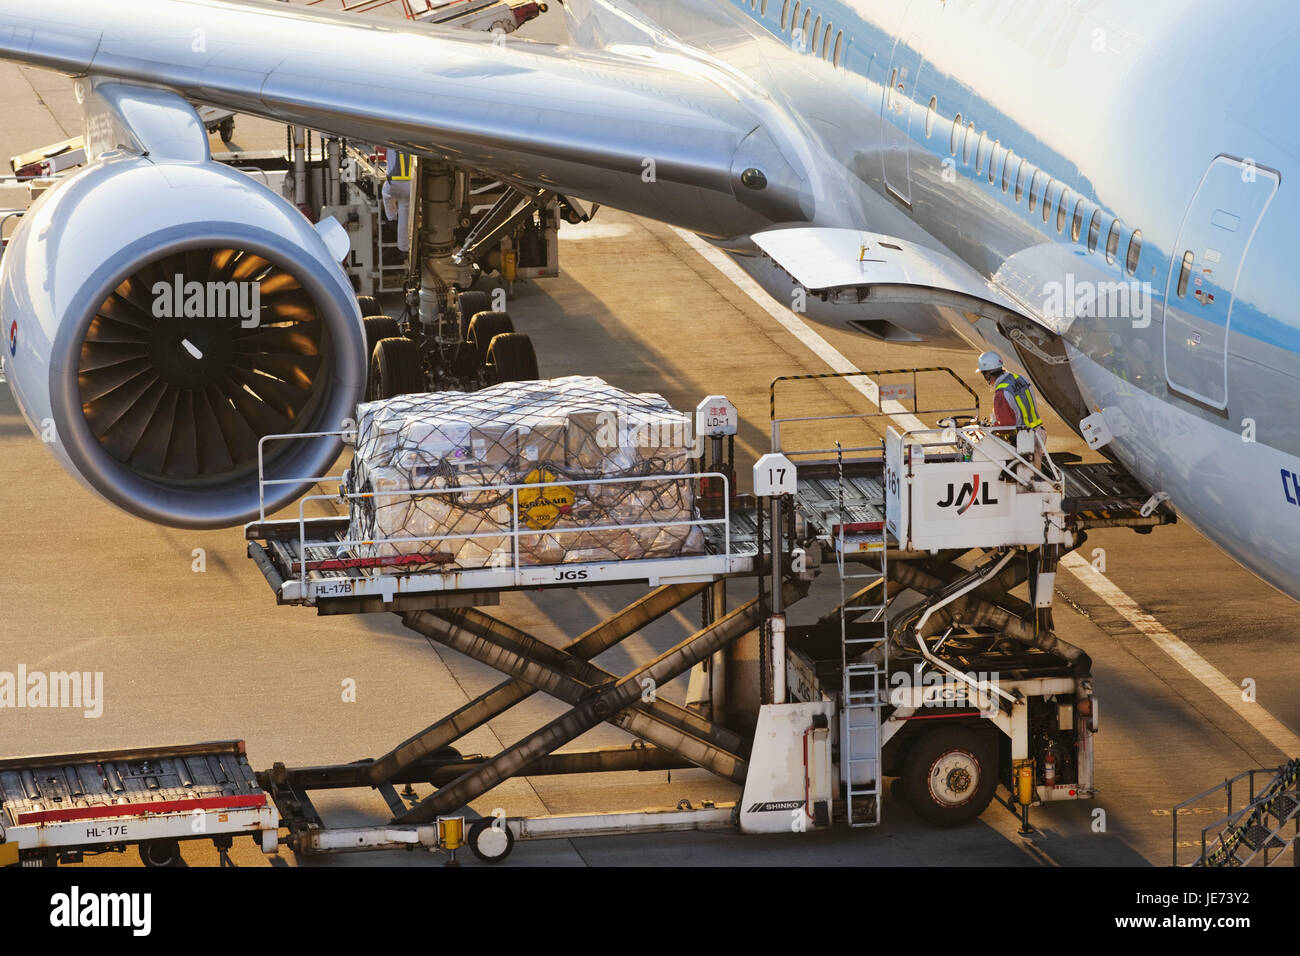 Japan, Tokyo, Narita Internationally airport, landing field, airplane, loading, airport, outside, travel, journey - Stock Image